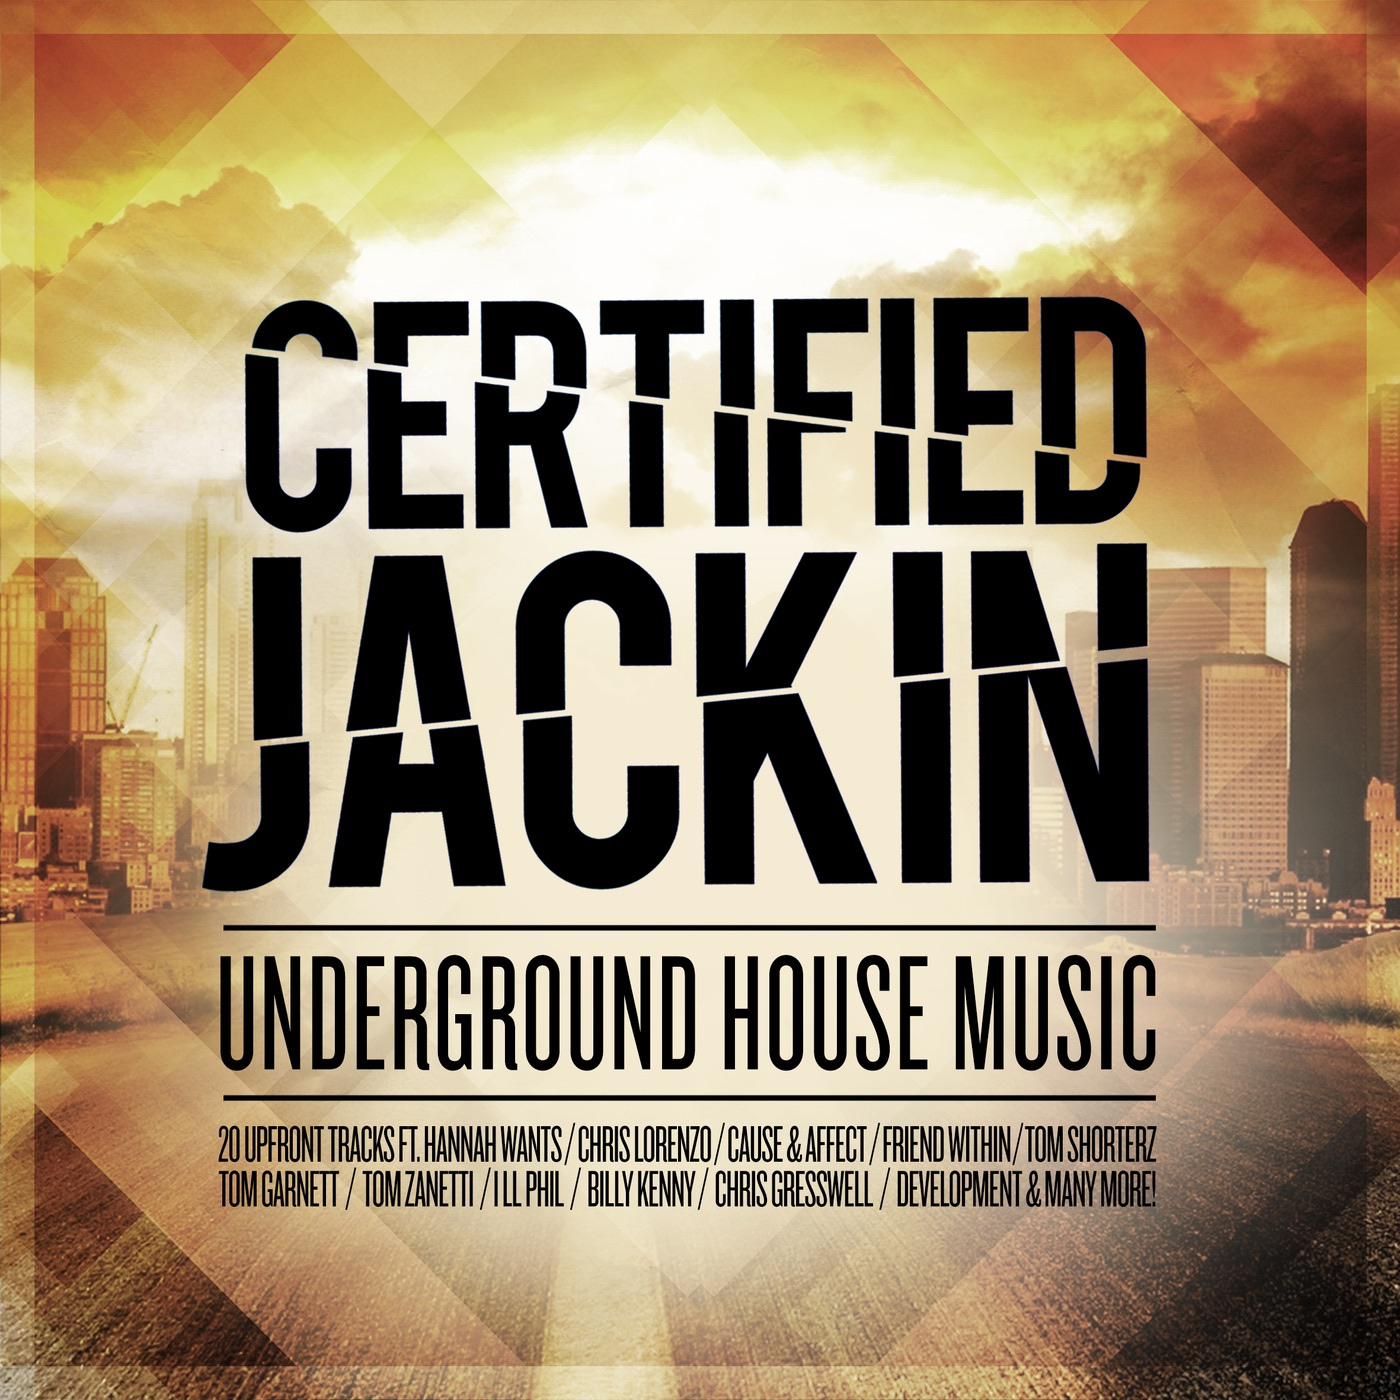 Certified jackin underground house music by various for House music singers